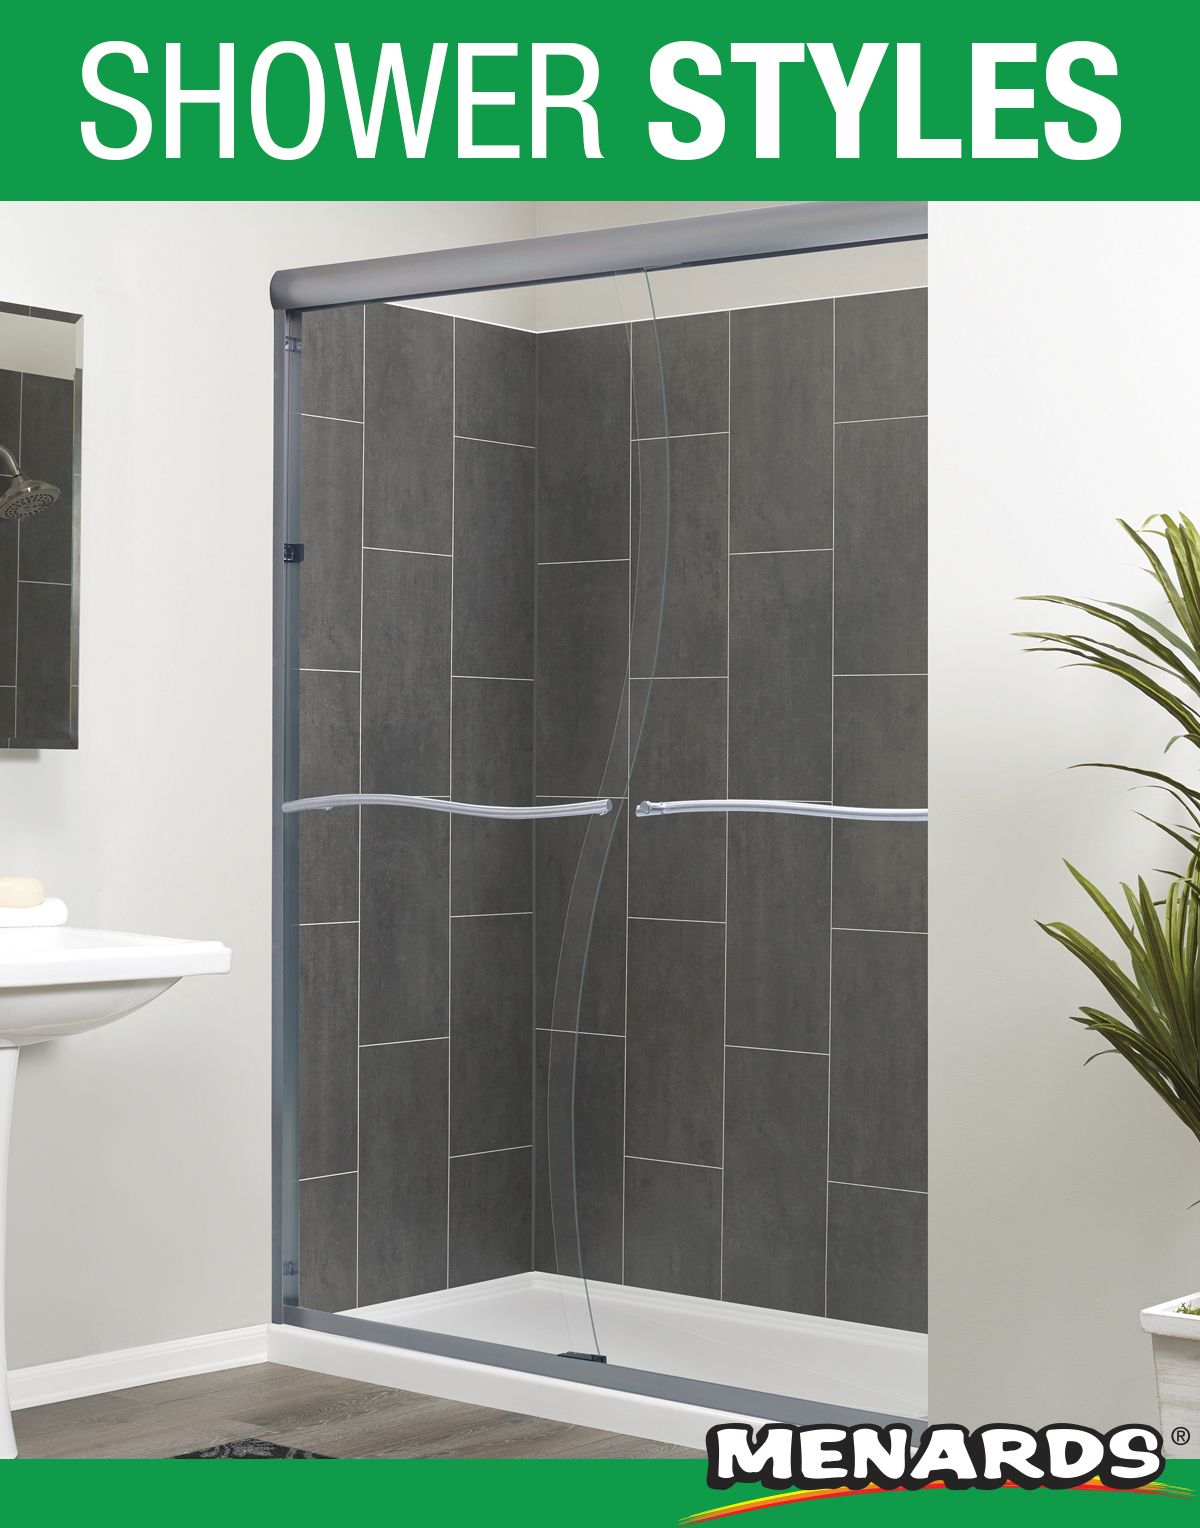 Say Goodbye To Mortar Messy Grout And Time Consuming Tiling For